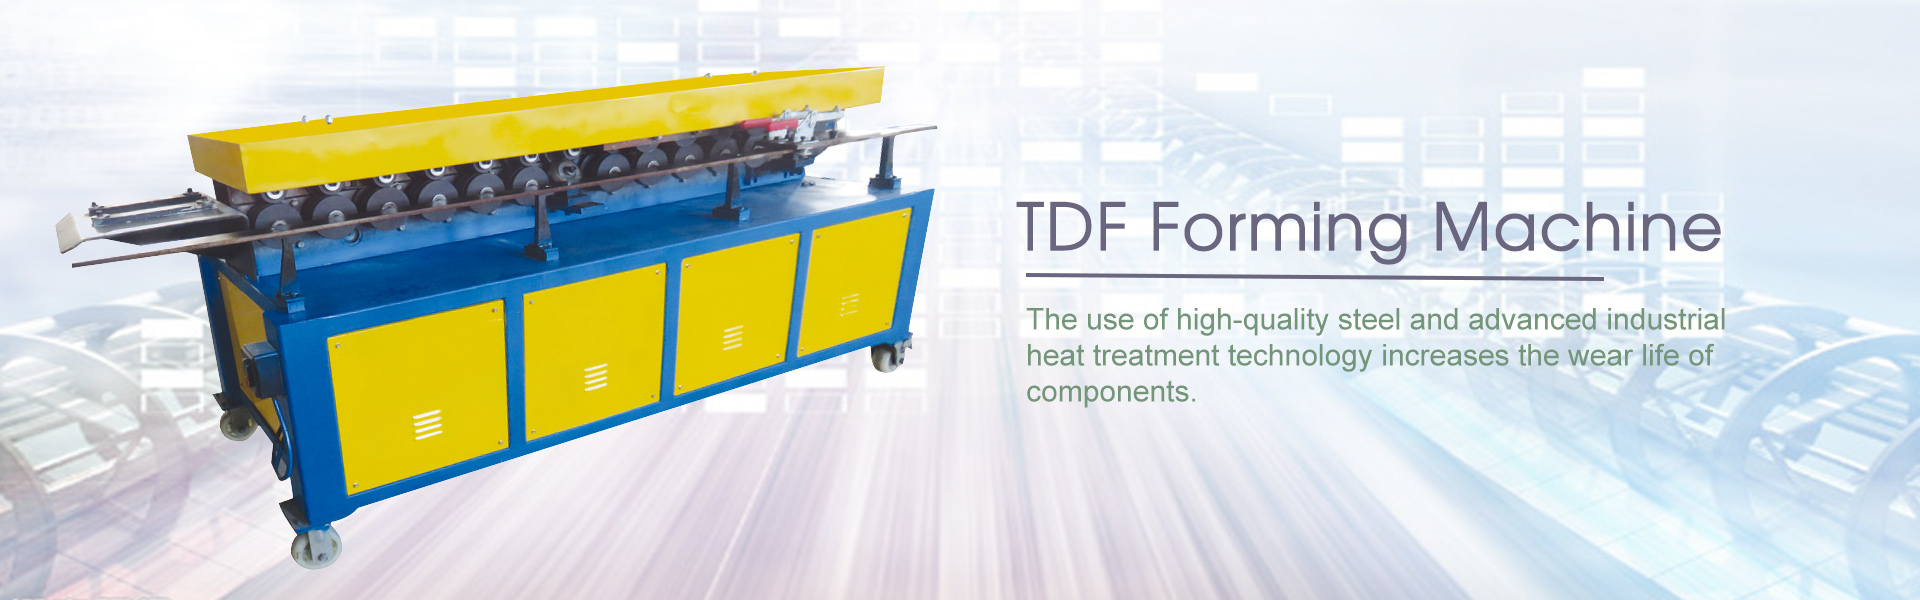 JHT TDF - Flange Forming Machine